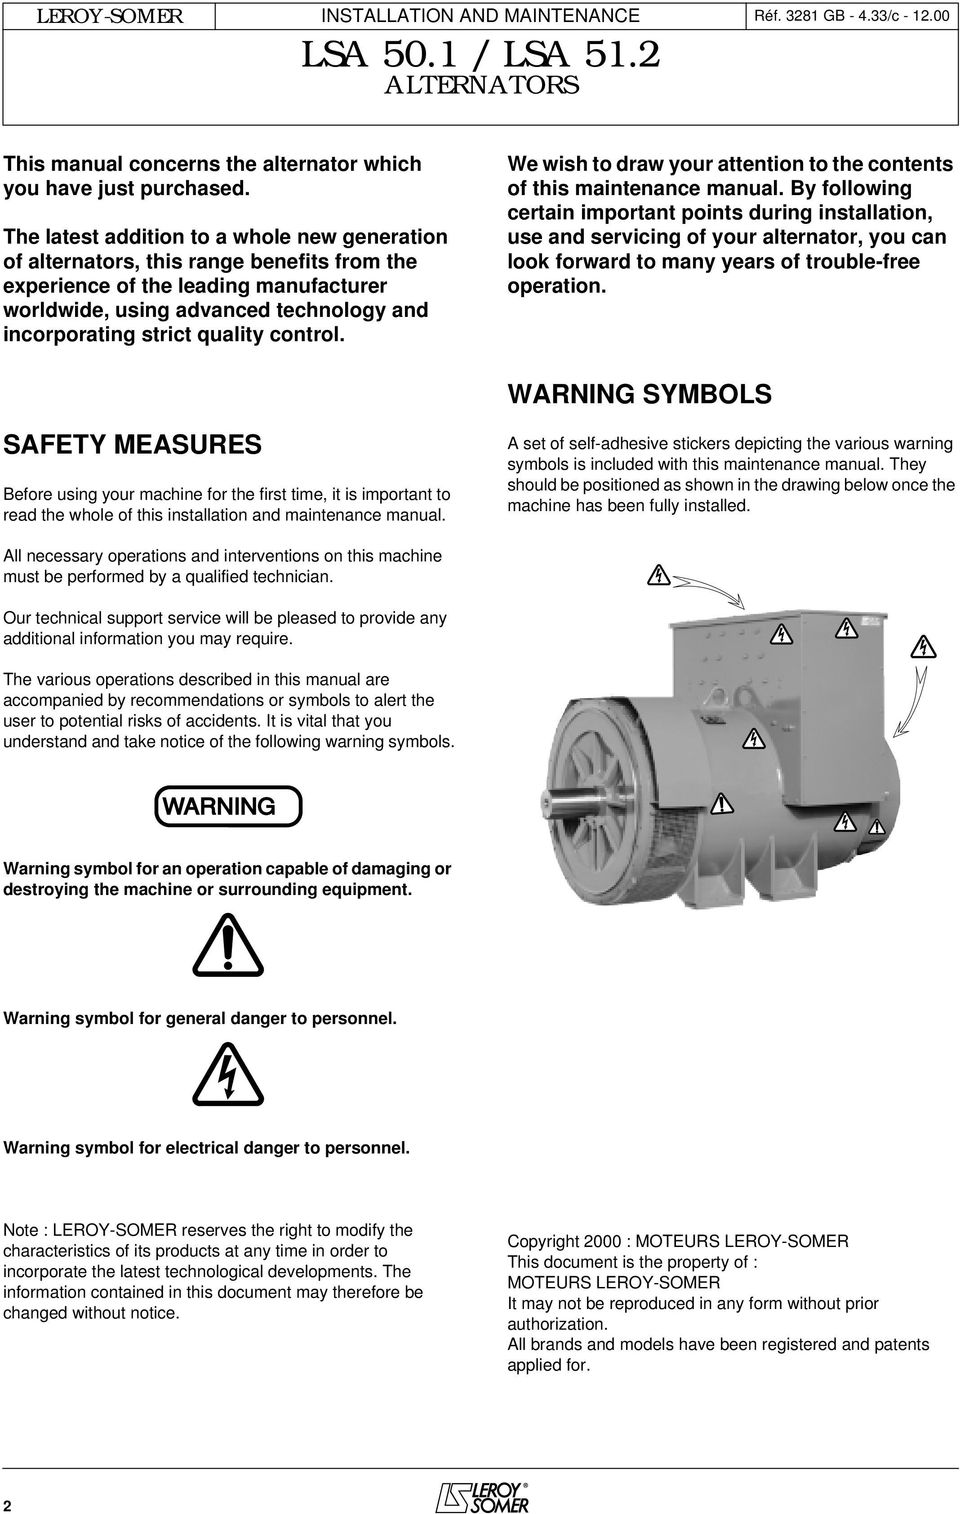 users guide and maintenance manual leroy somer alternators lsa 50 1we wish to draw your attention to the contents of this maintenance manual